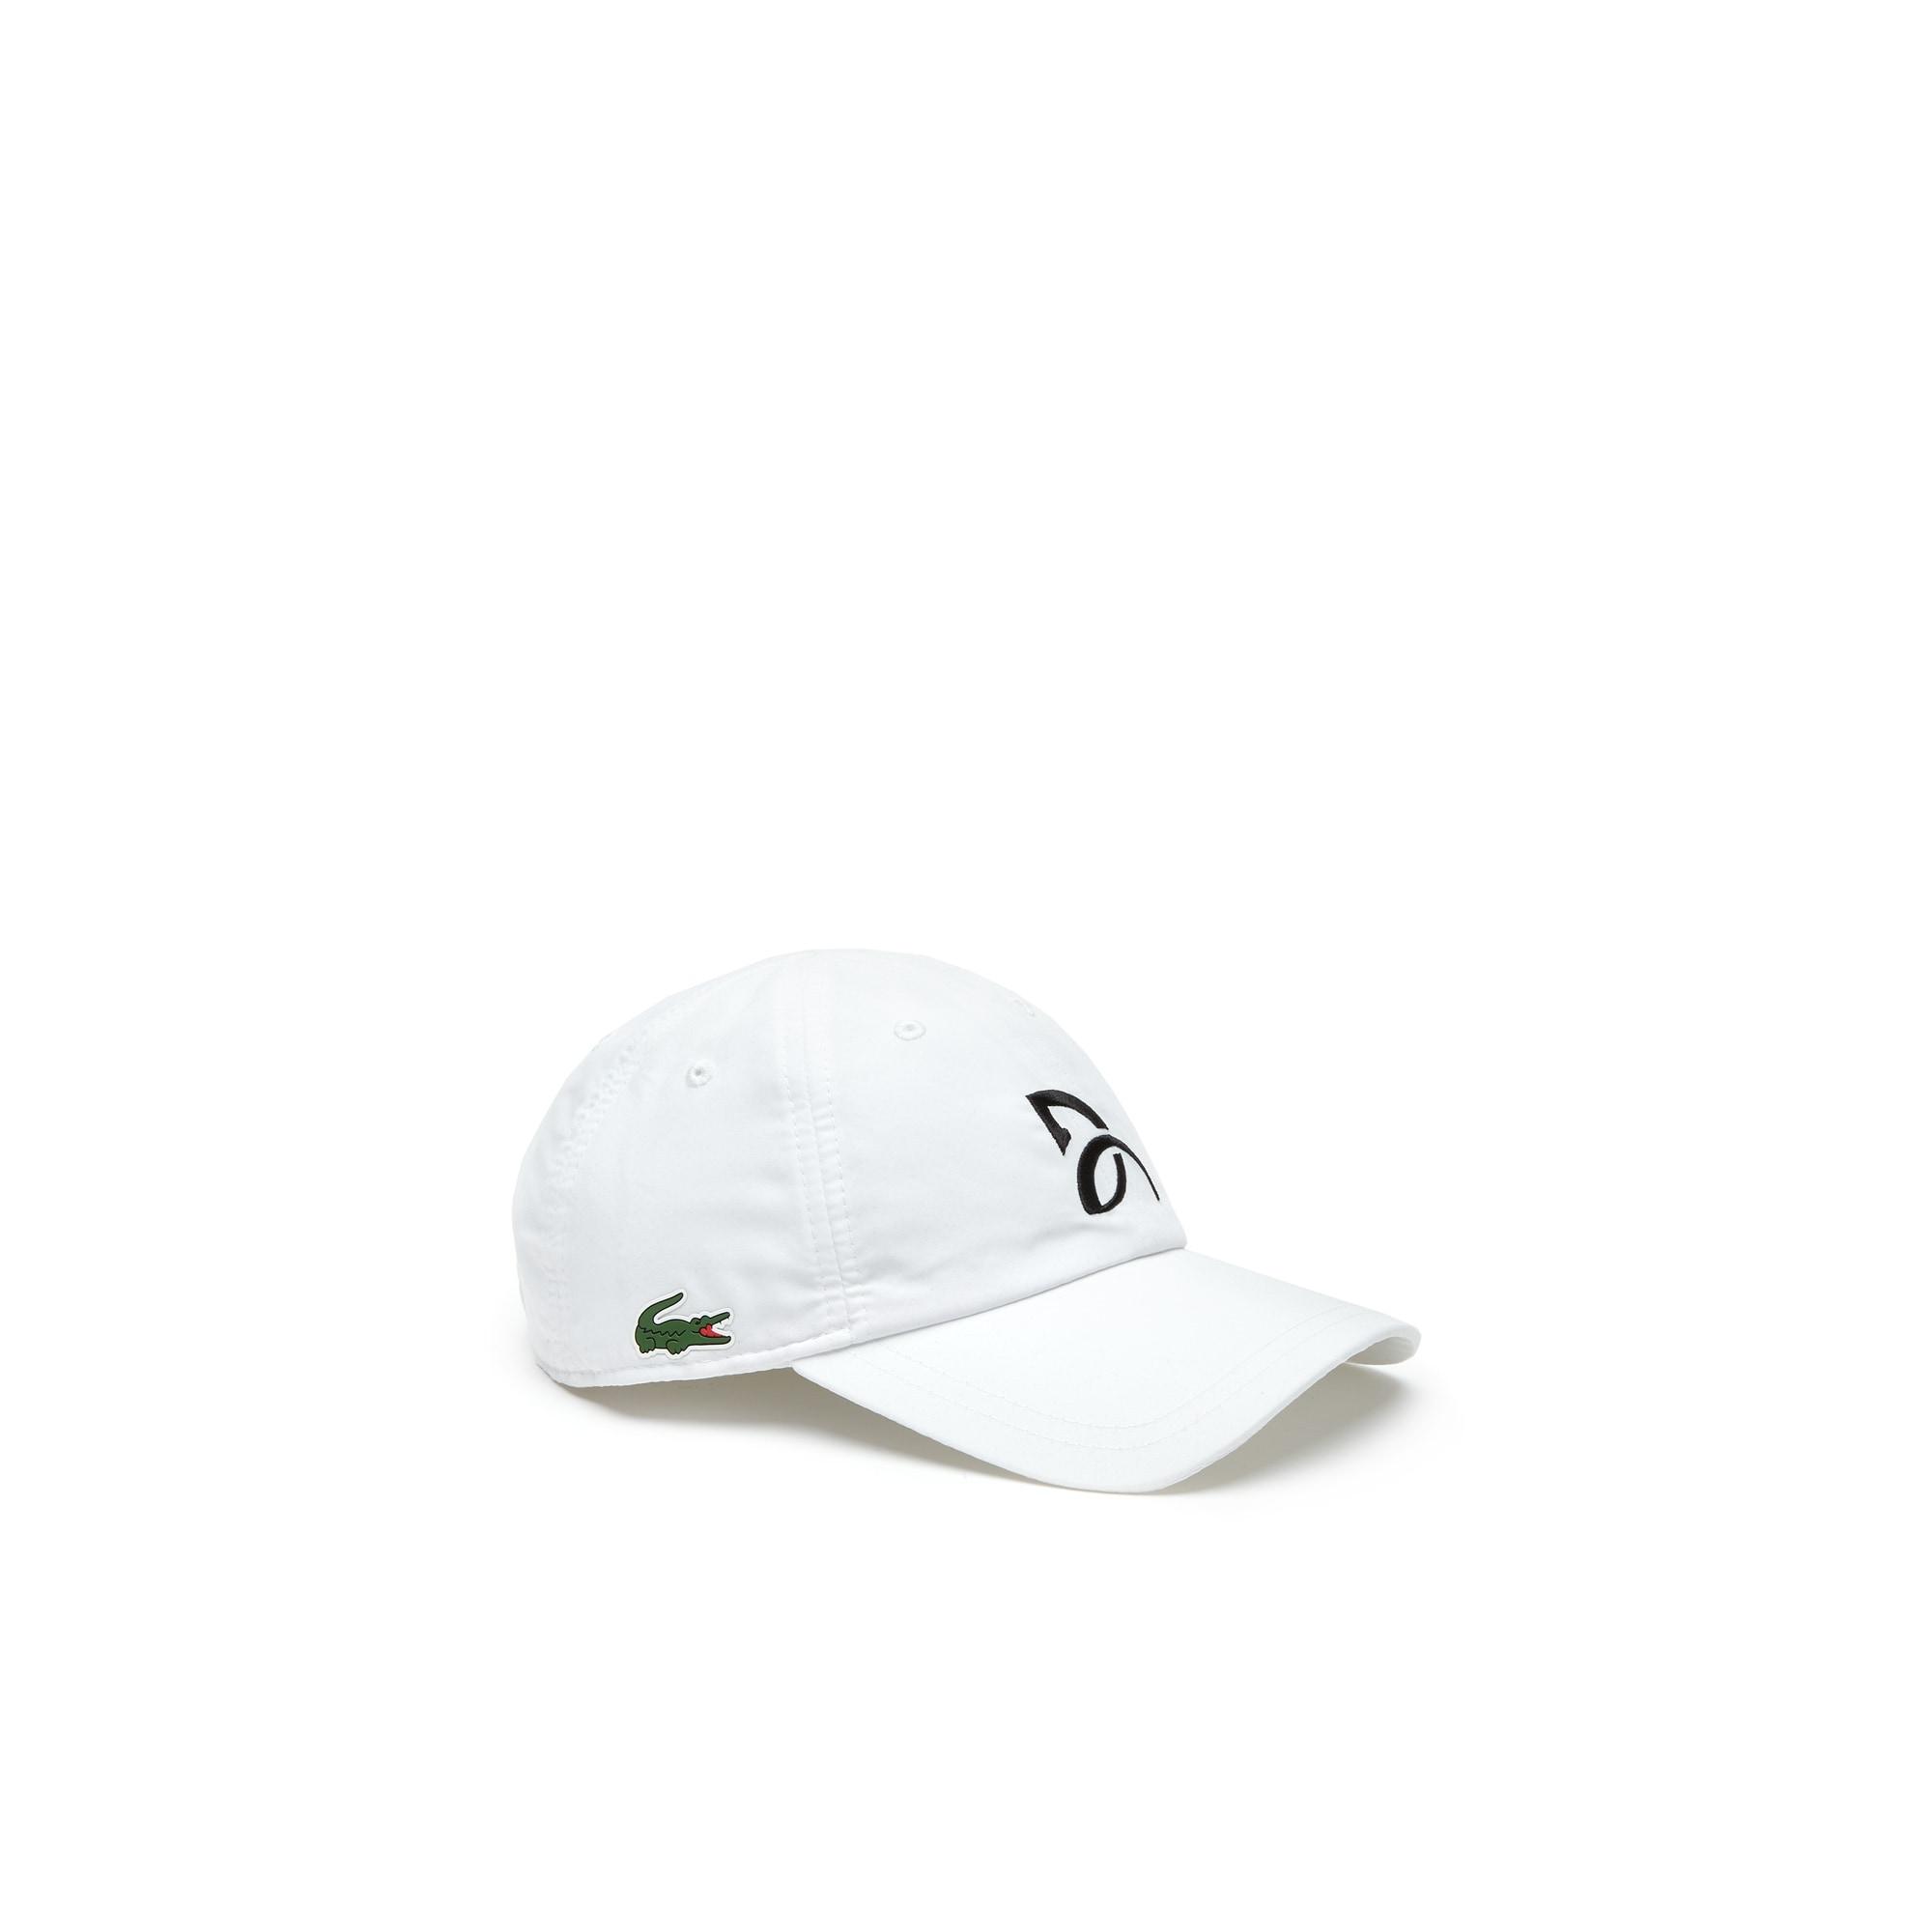 Men's SPORT Tennis  Microfiber Cap - Novak Djokovic Supporter Collection